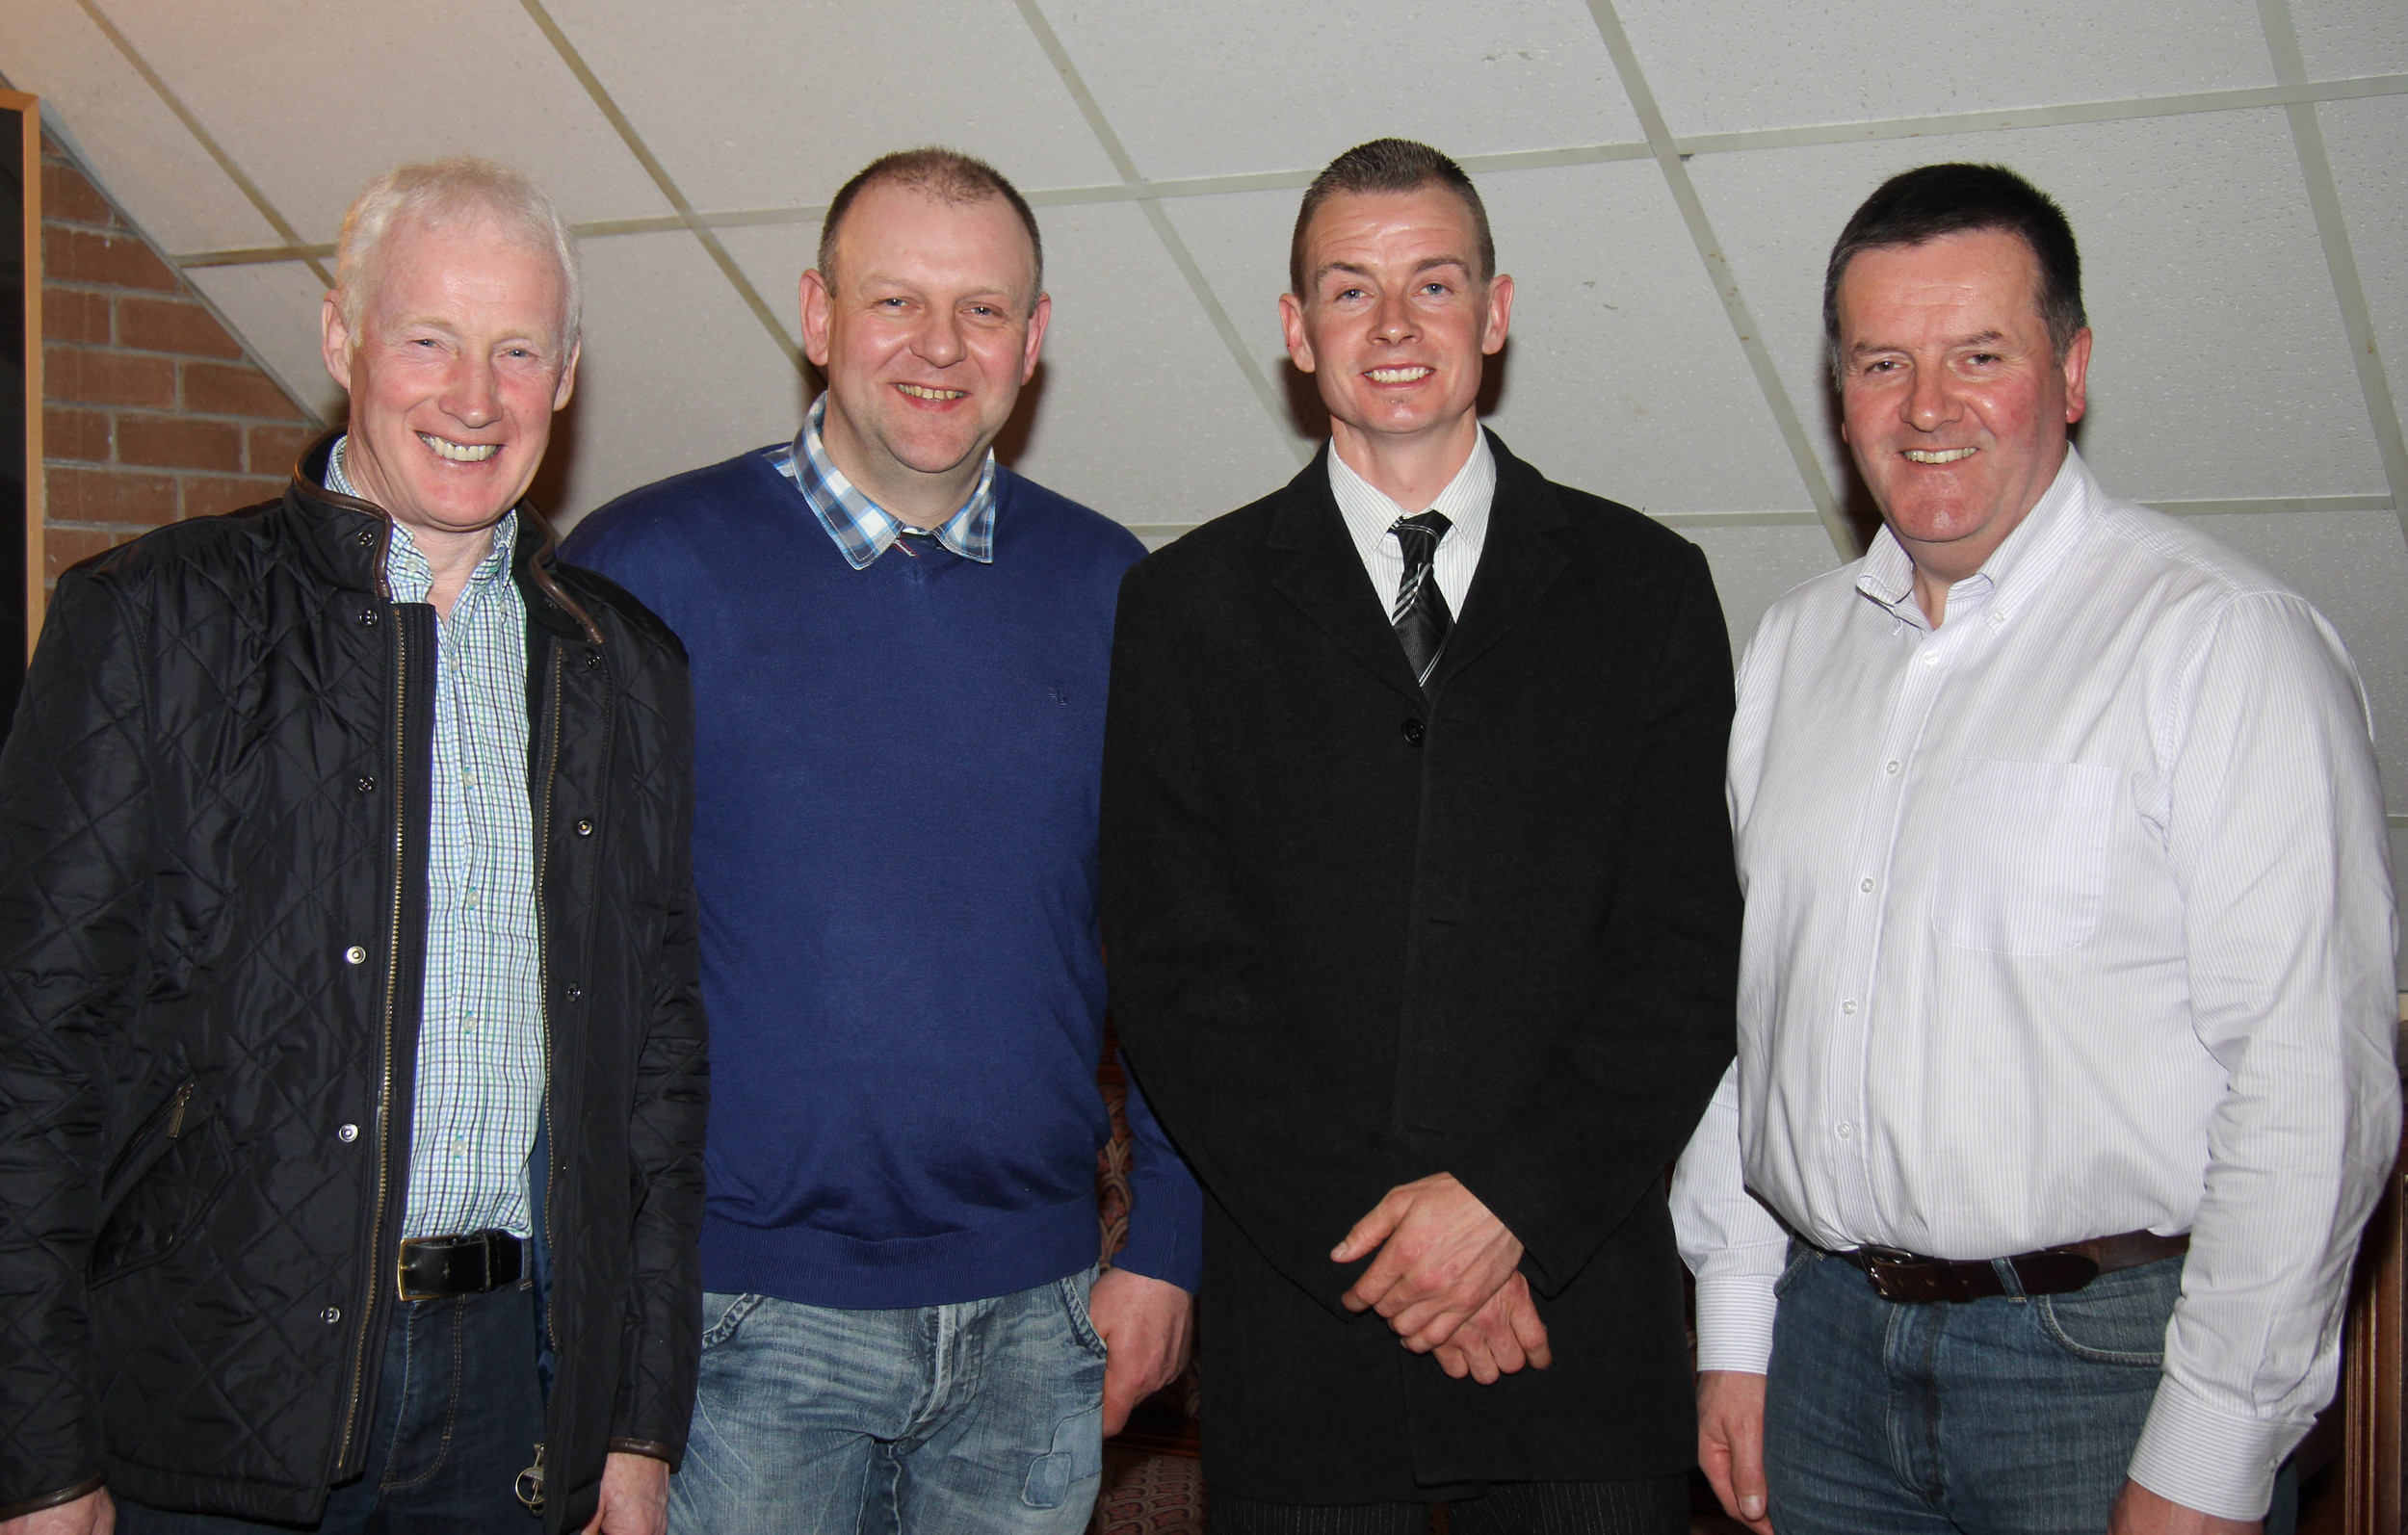 Office bearers elected at the NI Simmental Club's AGM, Dungannon, from left: Leslie Weatherup, treasurer; Matthew Cunning, vice chairman; Richard Rodgers, chairman: and Robin Boyd, secretary. Picture: Julie Hazelton